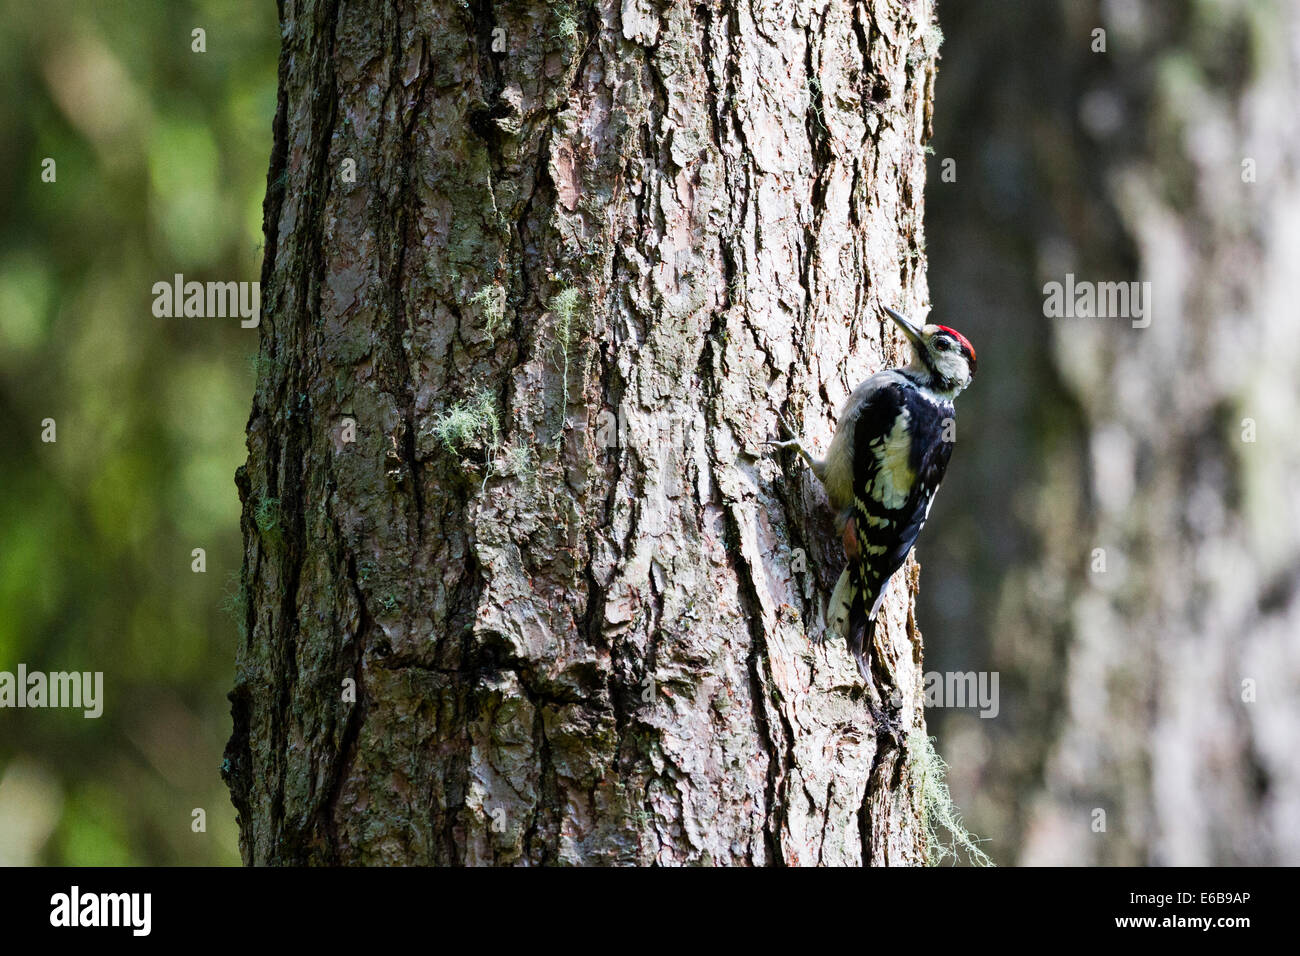 Great spotted woodpecker (Dendrocopos major) Scotland, UK - Stock Image